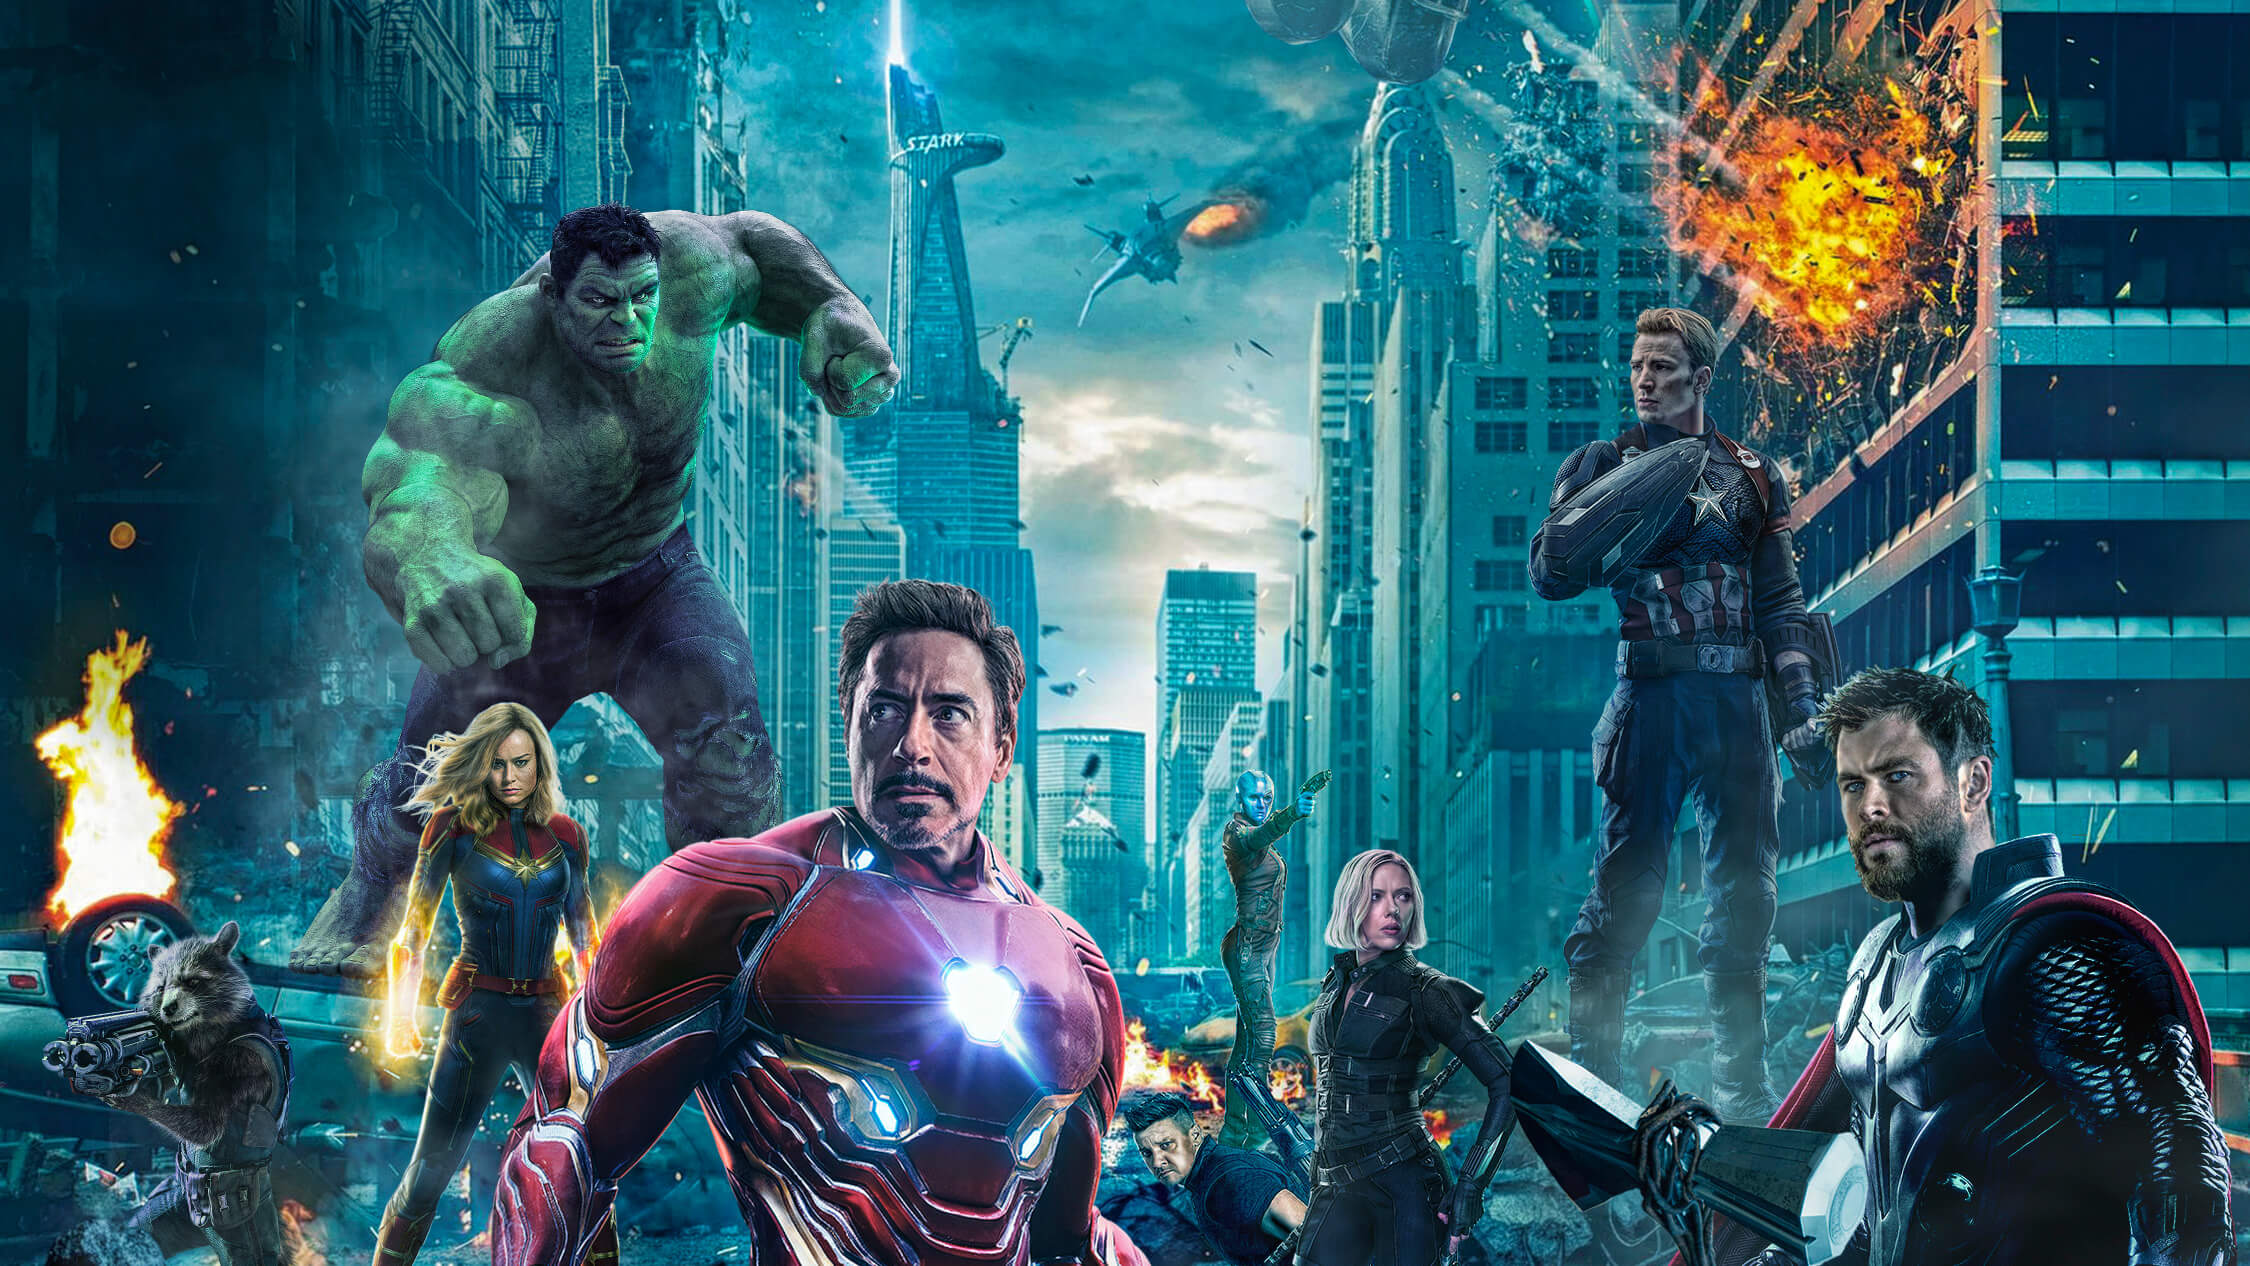 Endgame Avengers 2019 Wallpapers And Background Images